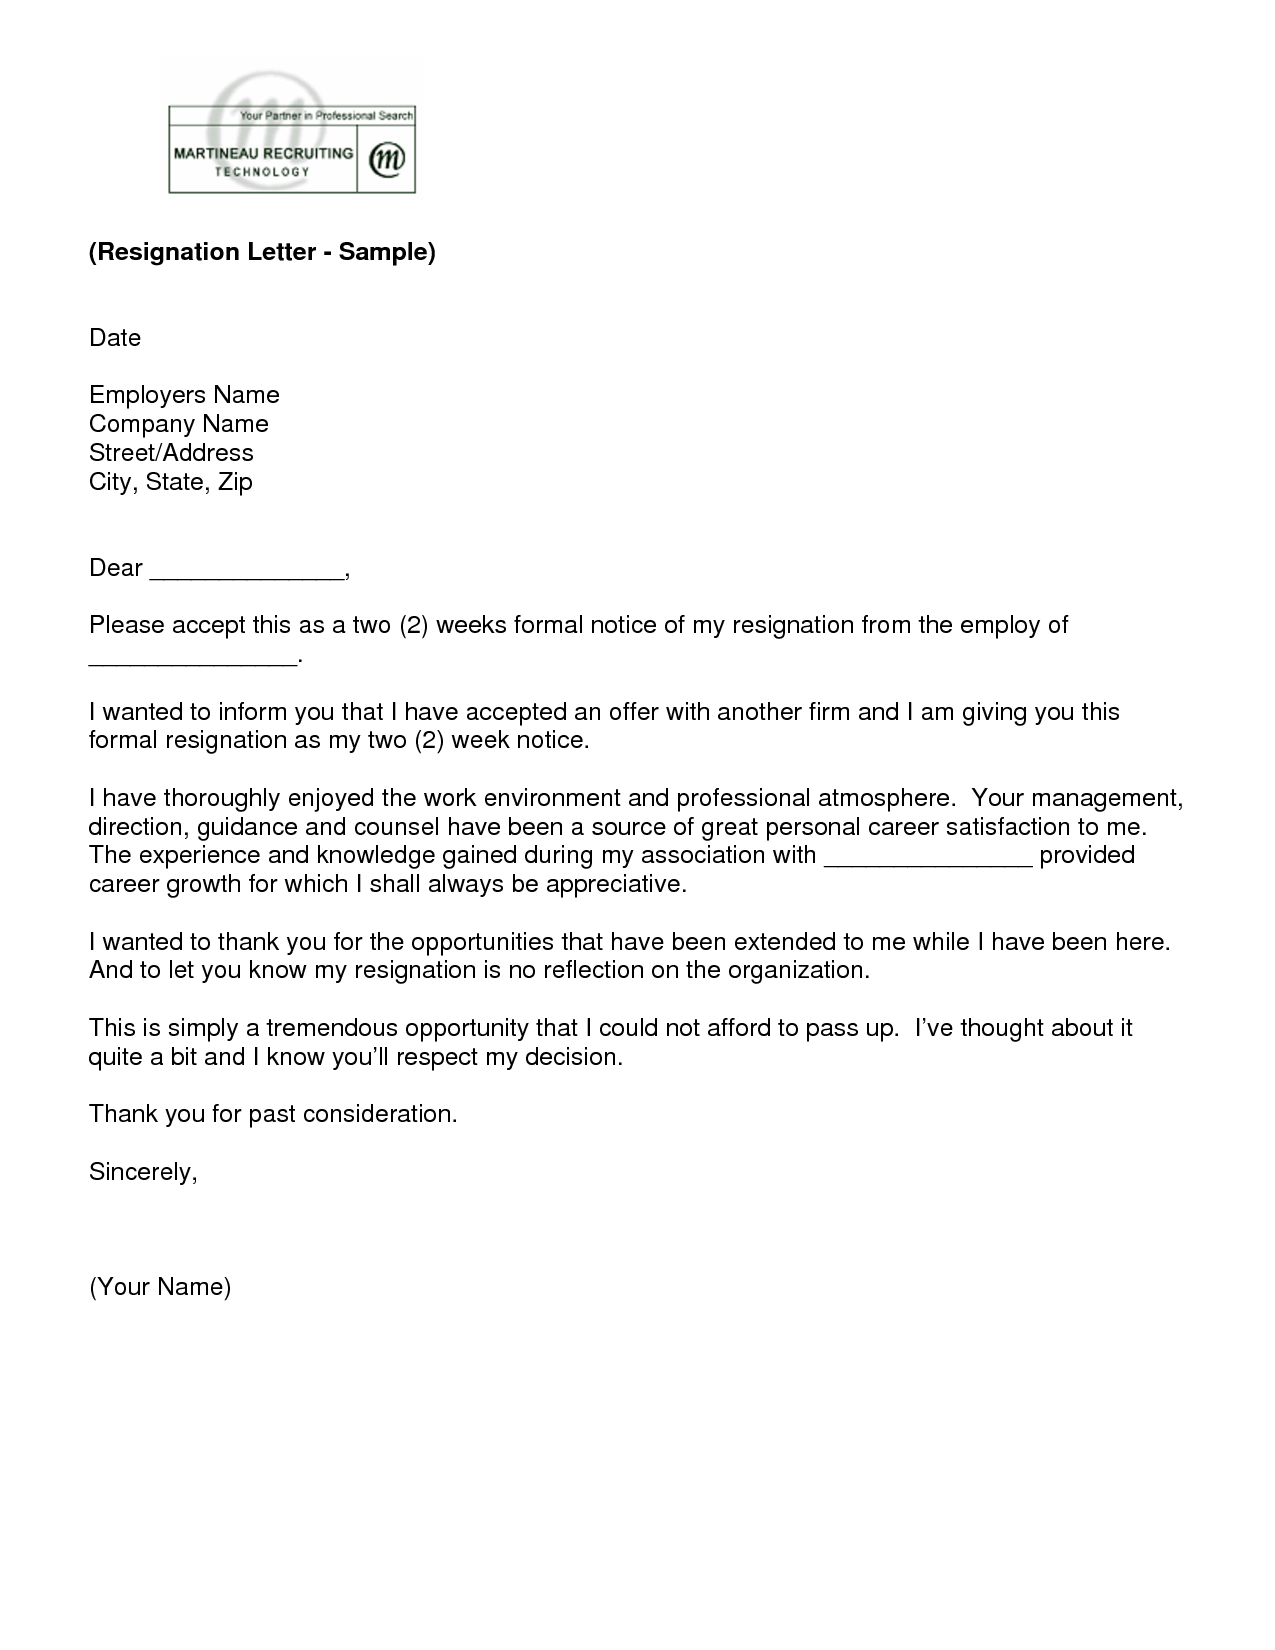 Letter Of Resignation 2 Weeks Notice Template To Resignation Letter Sample 2 Weeks Notice